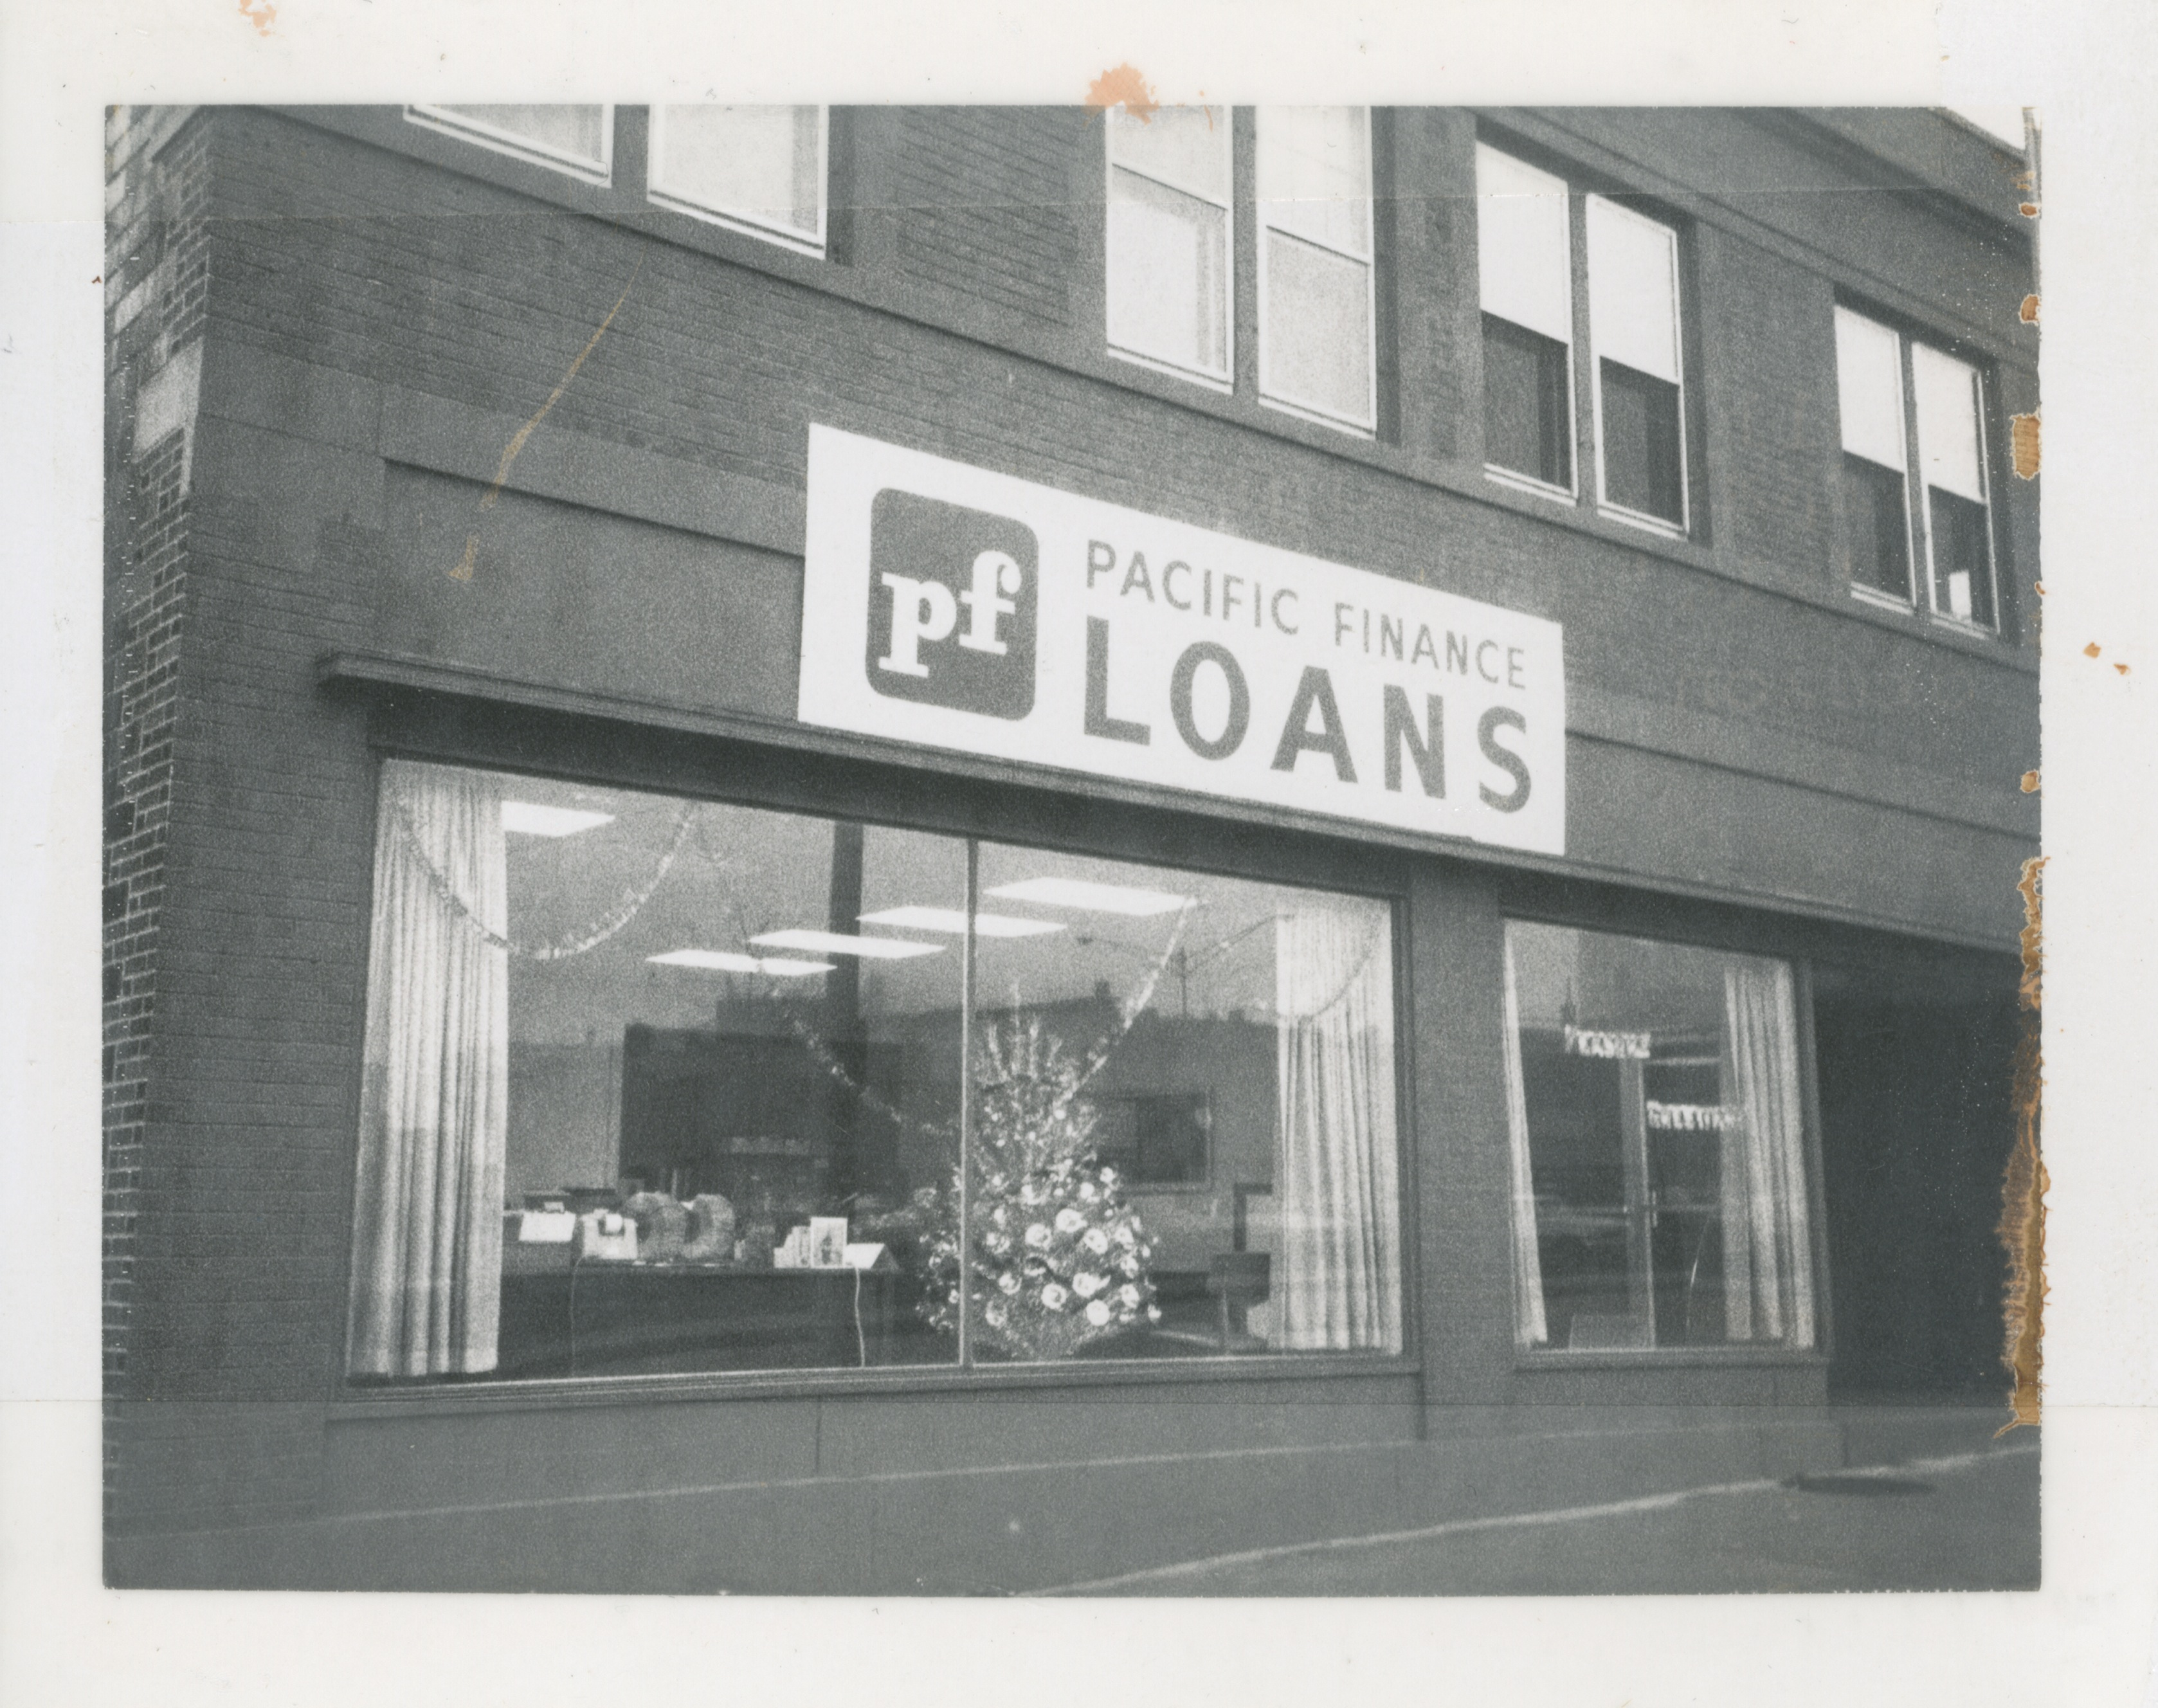 Pacific Finance Loans, 1973 image